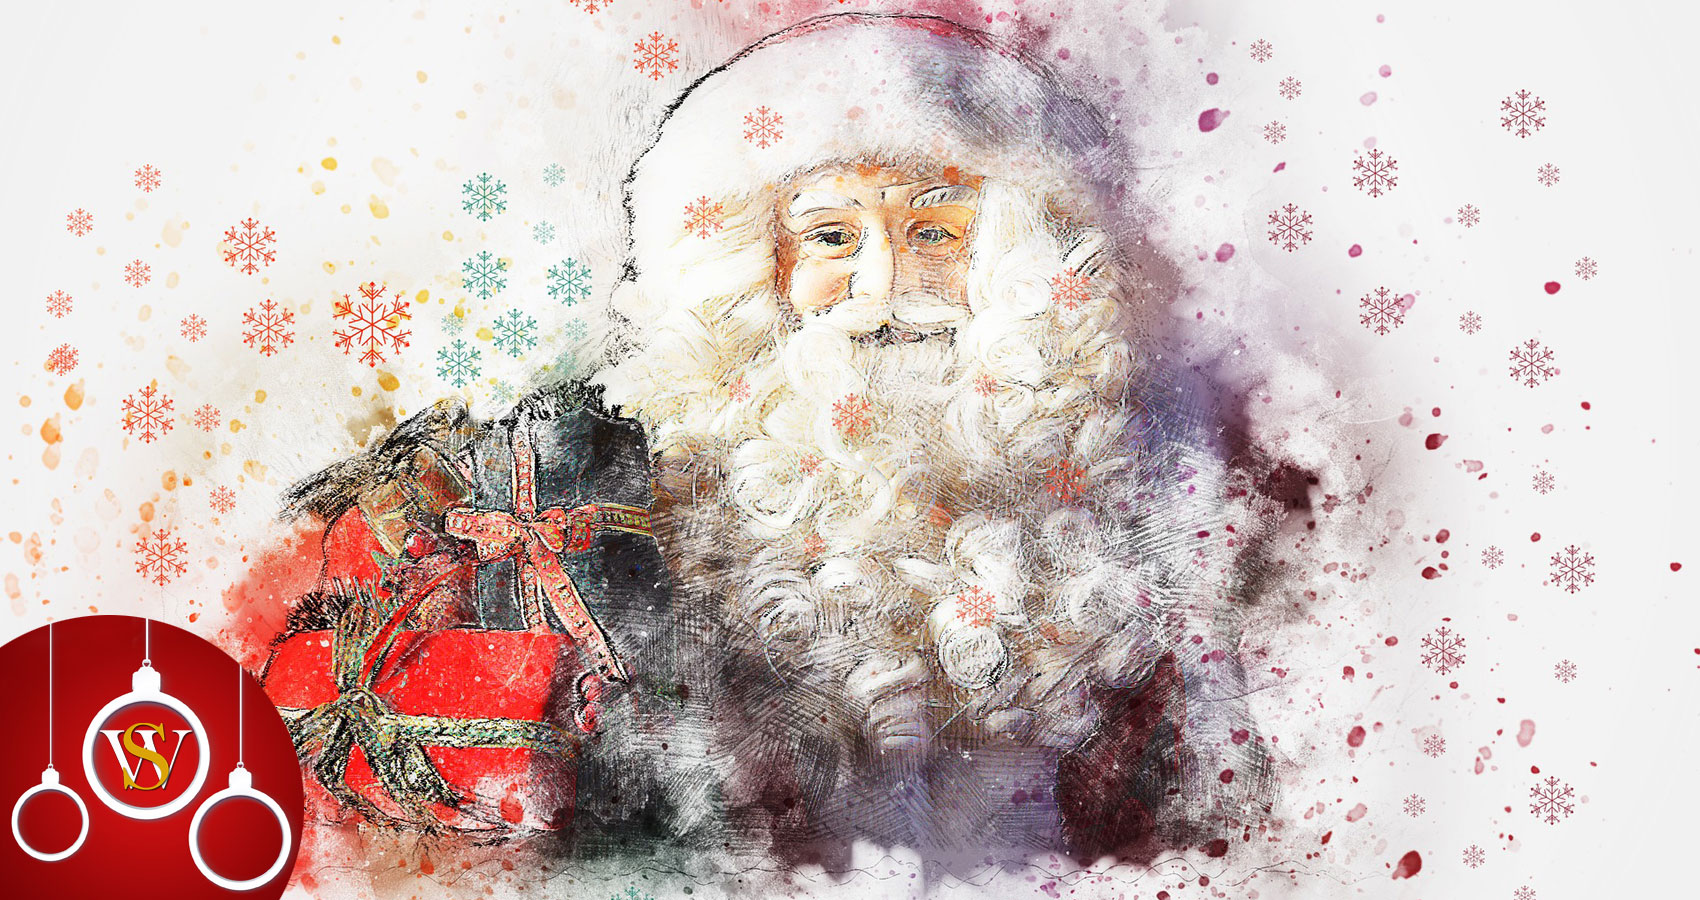 If Santa Was Real written by Simona Prilogan at Spillwords.com